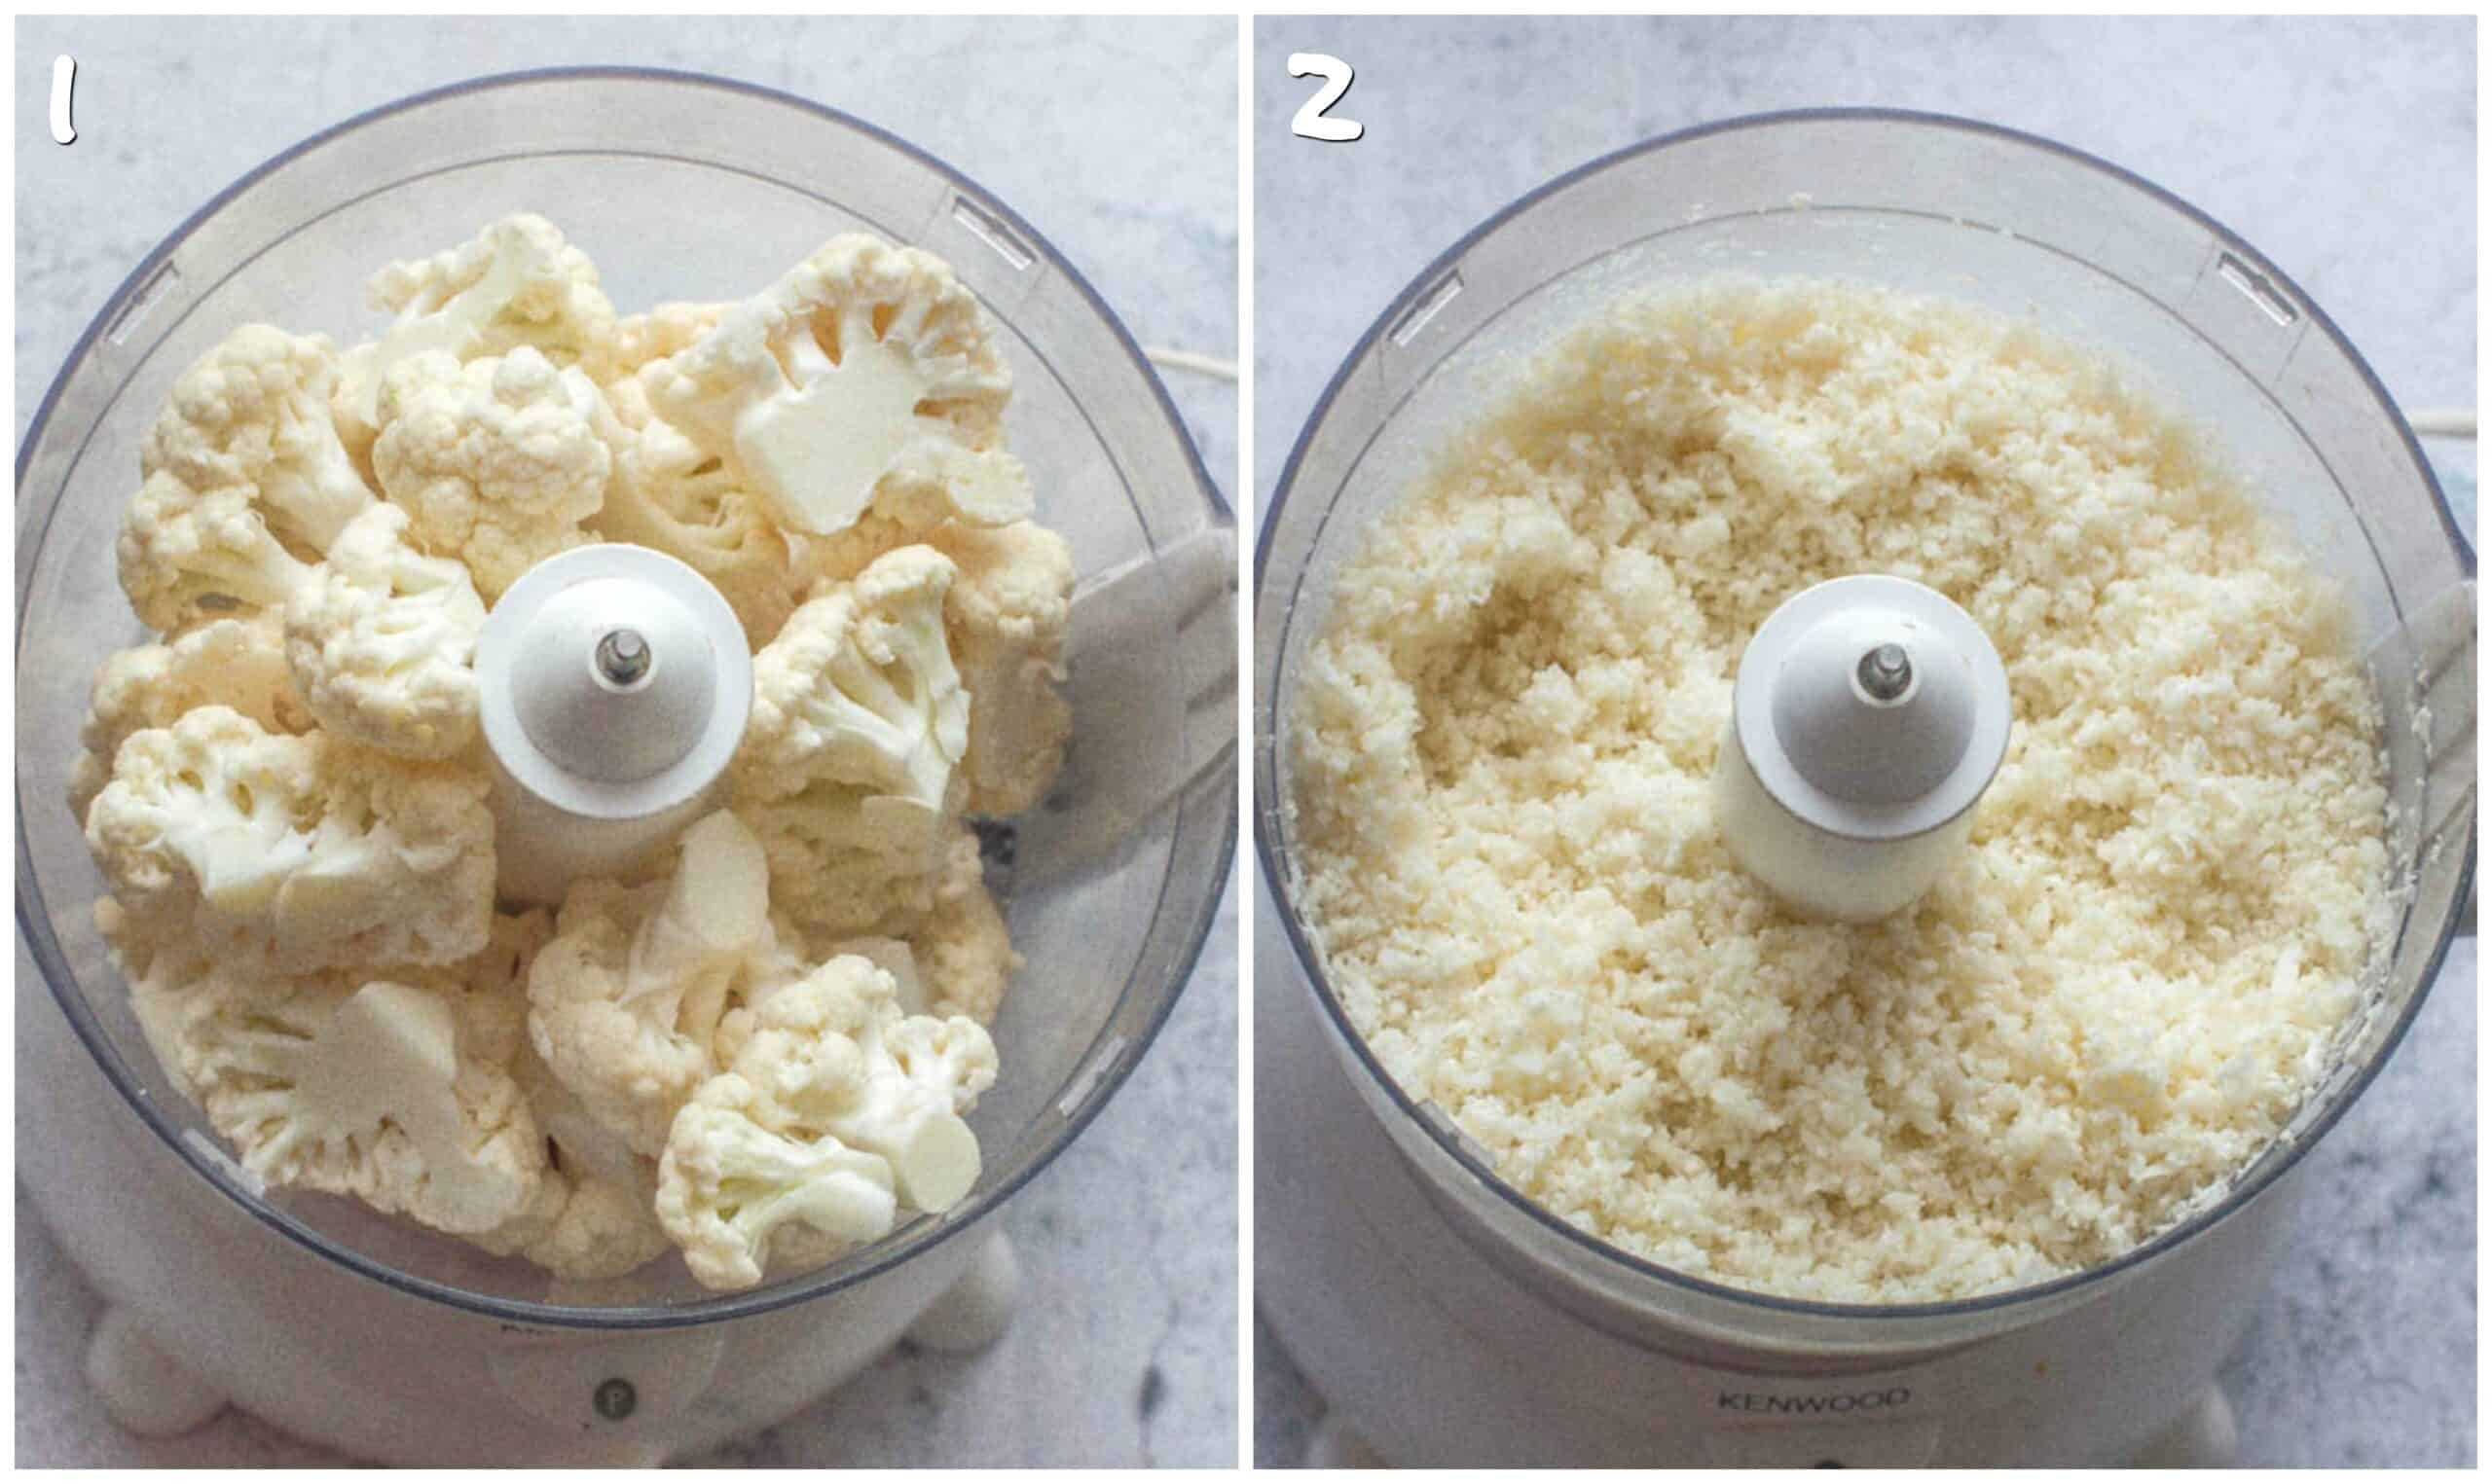 steps 1-2 cauliflower florets processed